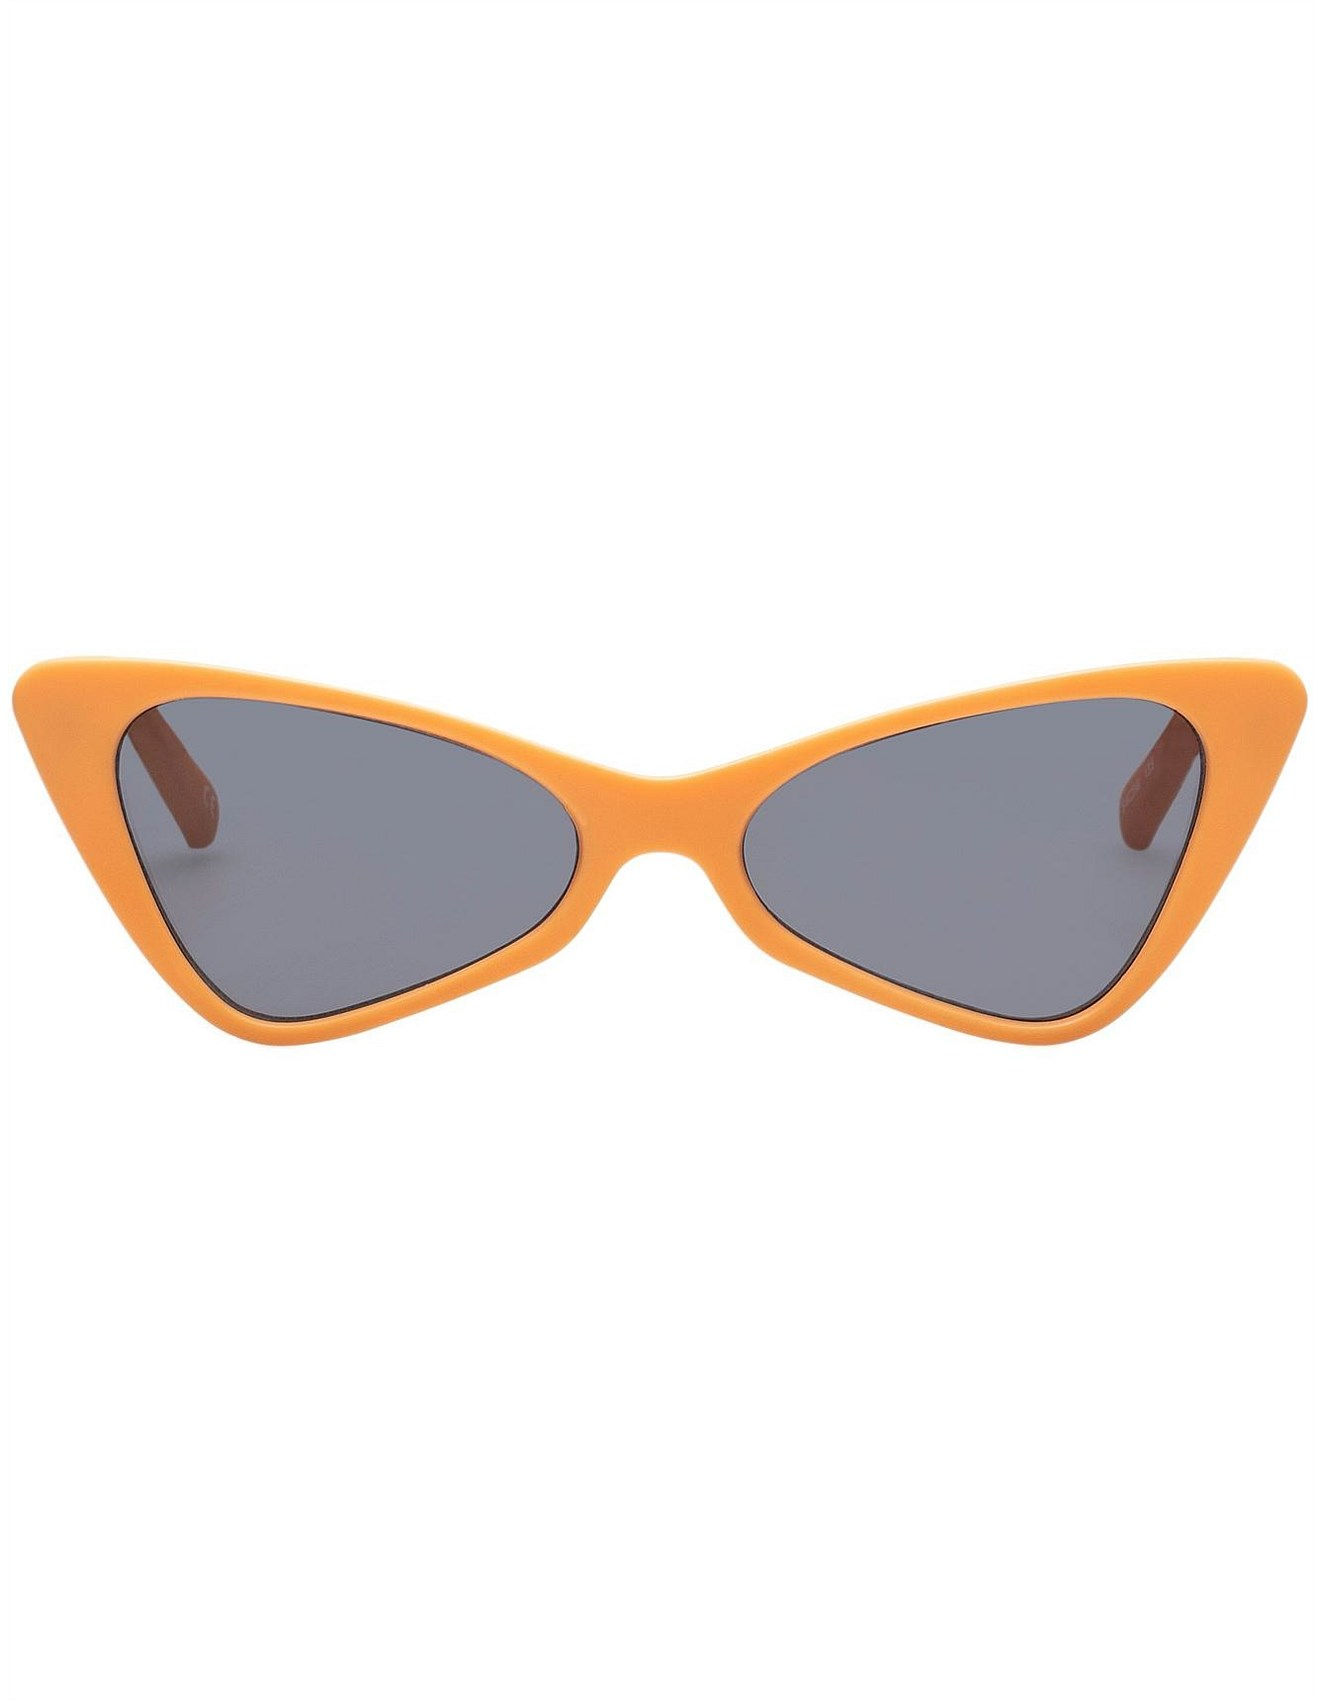 b44a378b693f Sunglasses - On The Hunt Sunglasses